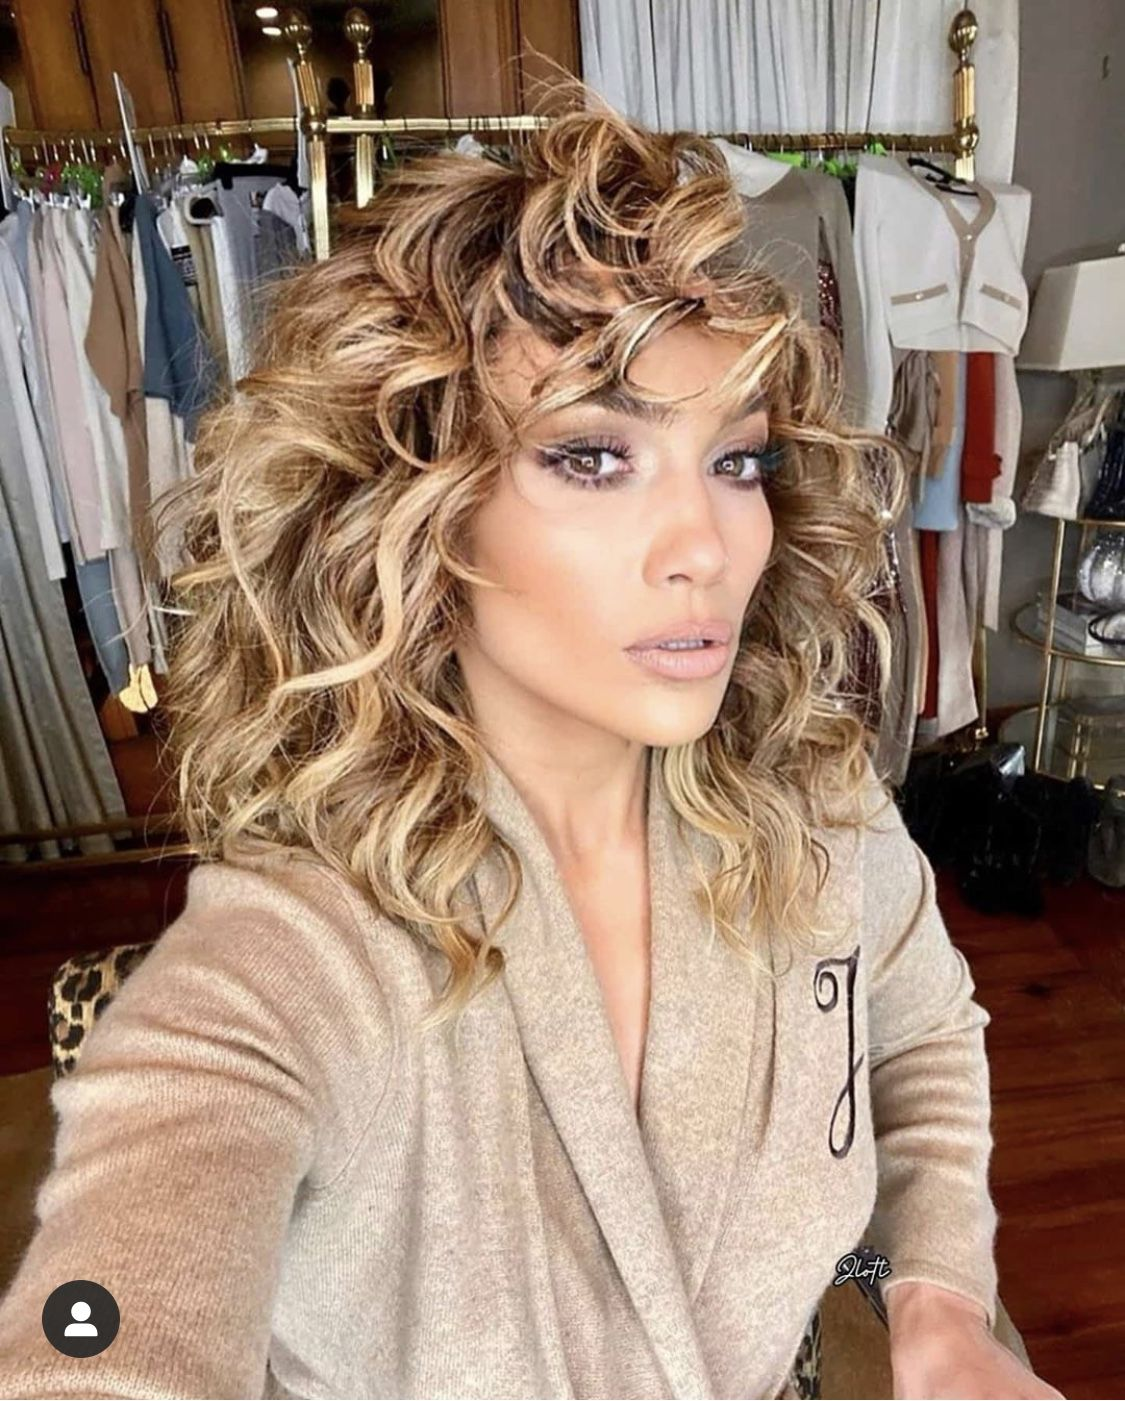 Pin By Con On Dzhennifer Lopes In 2020 Jennifer Lopez Hair Jennifer Lopez Hair Color Jlo Hair